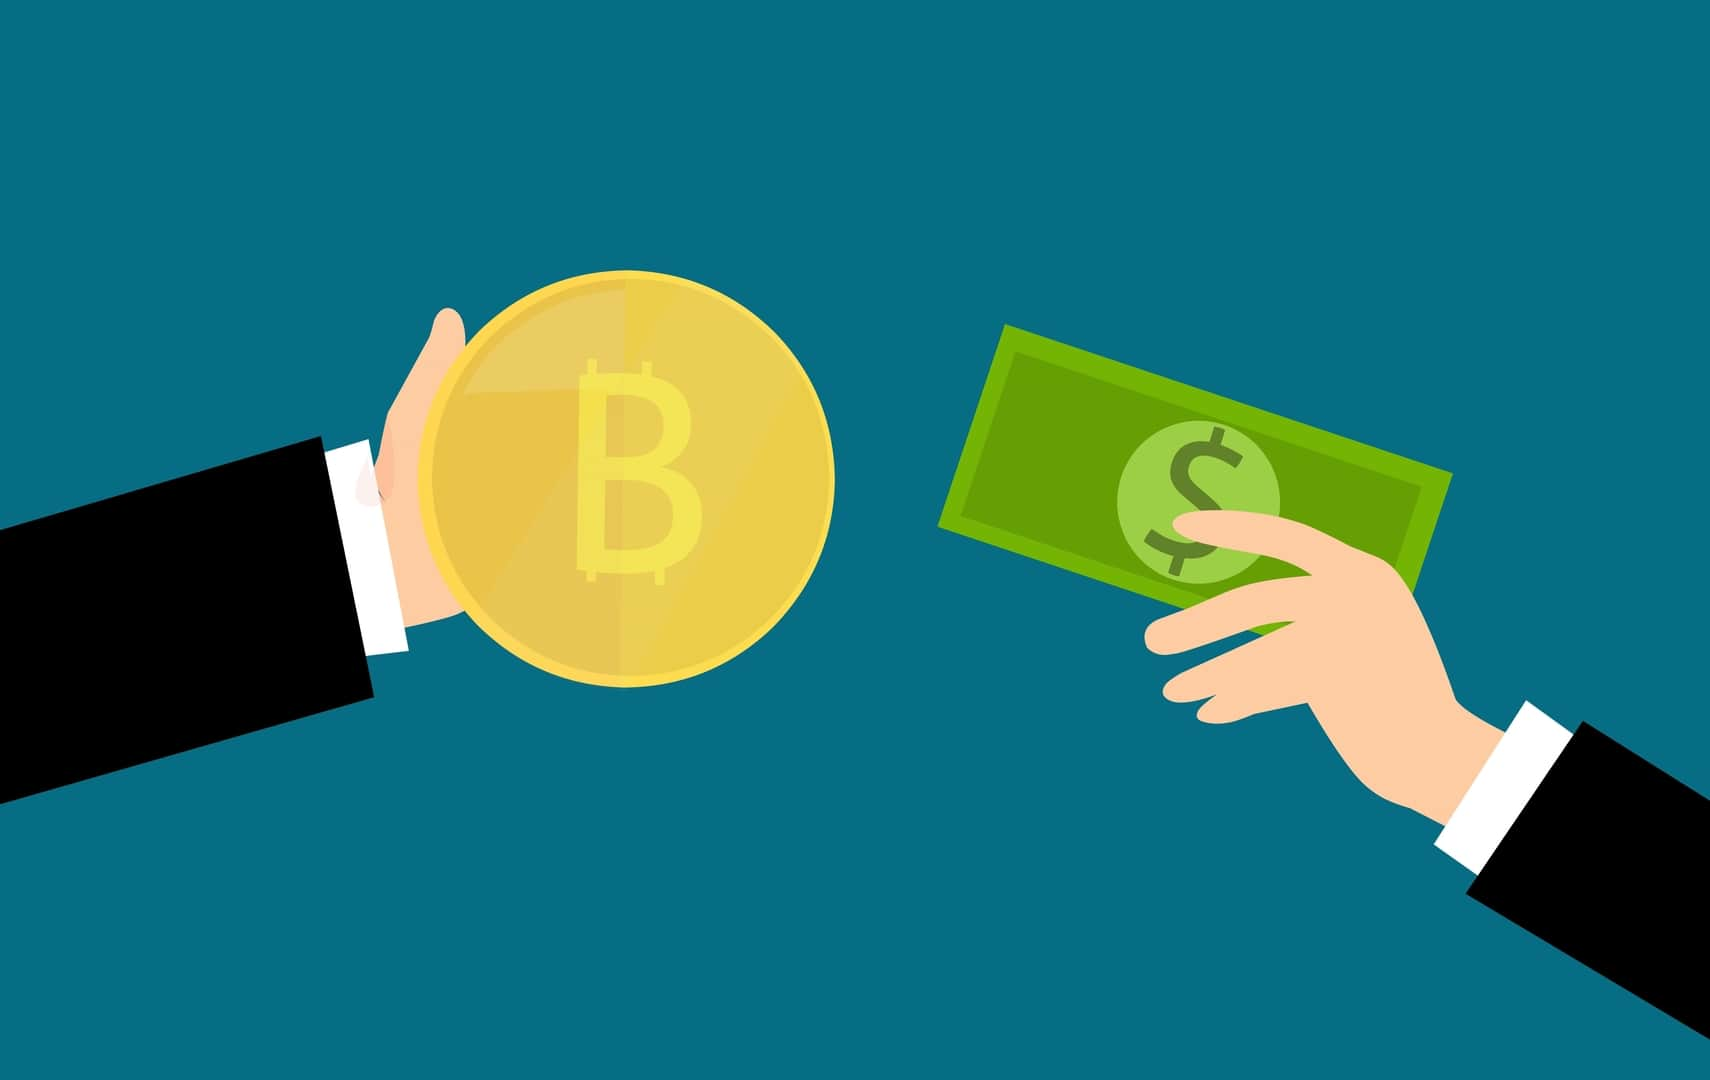 Offer Goods Or Services In Exchange For Bitcoin